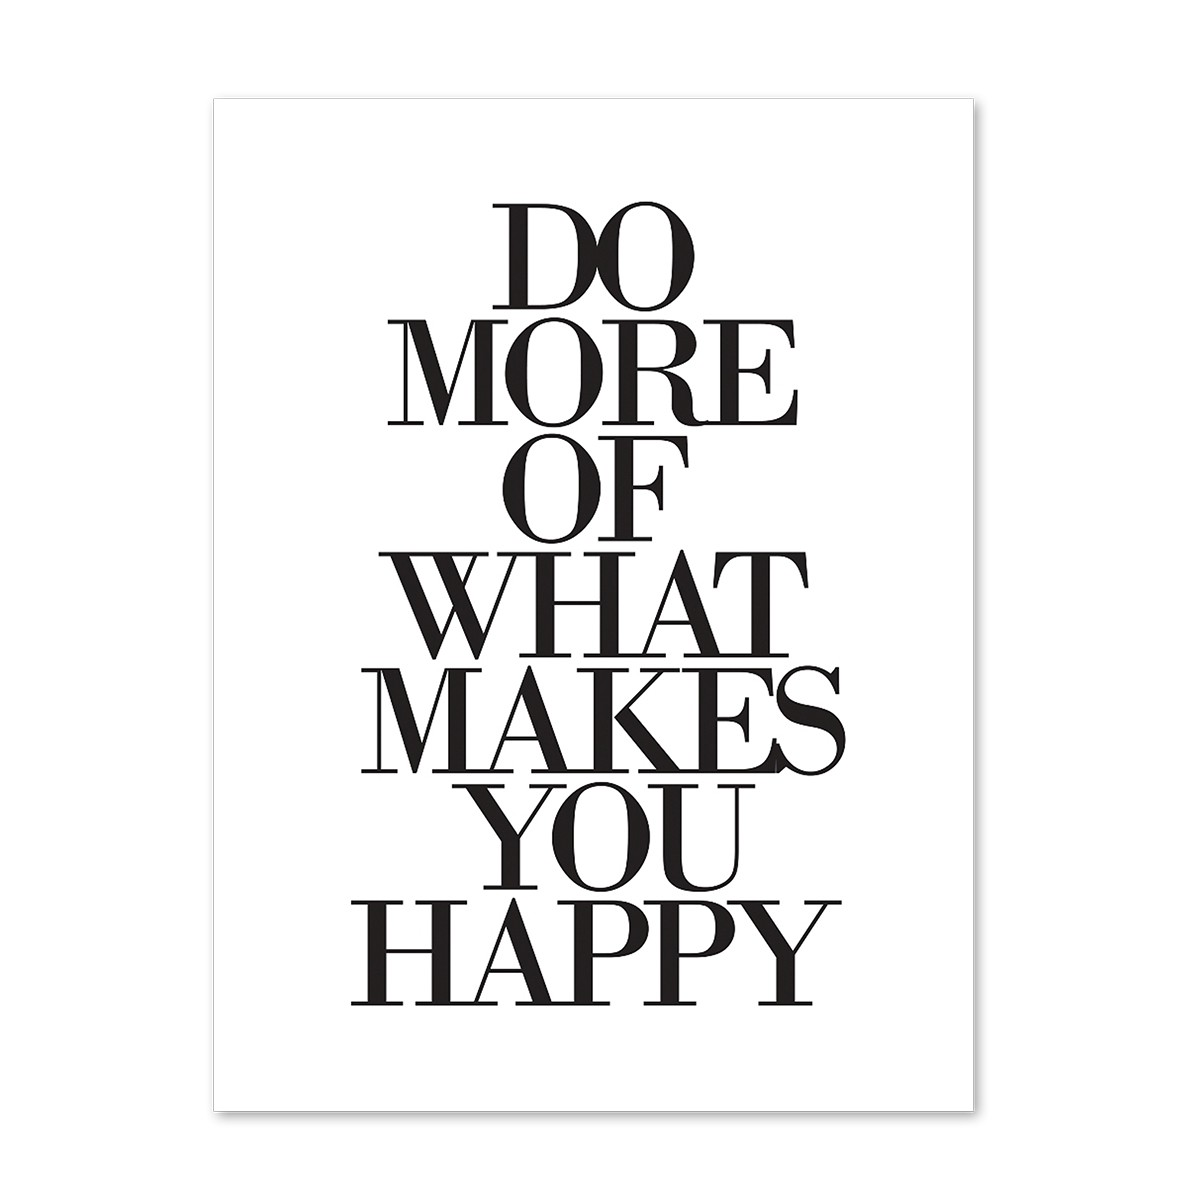 design poster 39 do more of what makes you happy 39 30x40 cm schwarz weiss typographie spruch poster. Black Bedroom Furniture Sets. Home Design Ideas